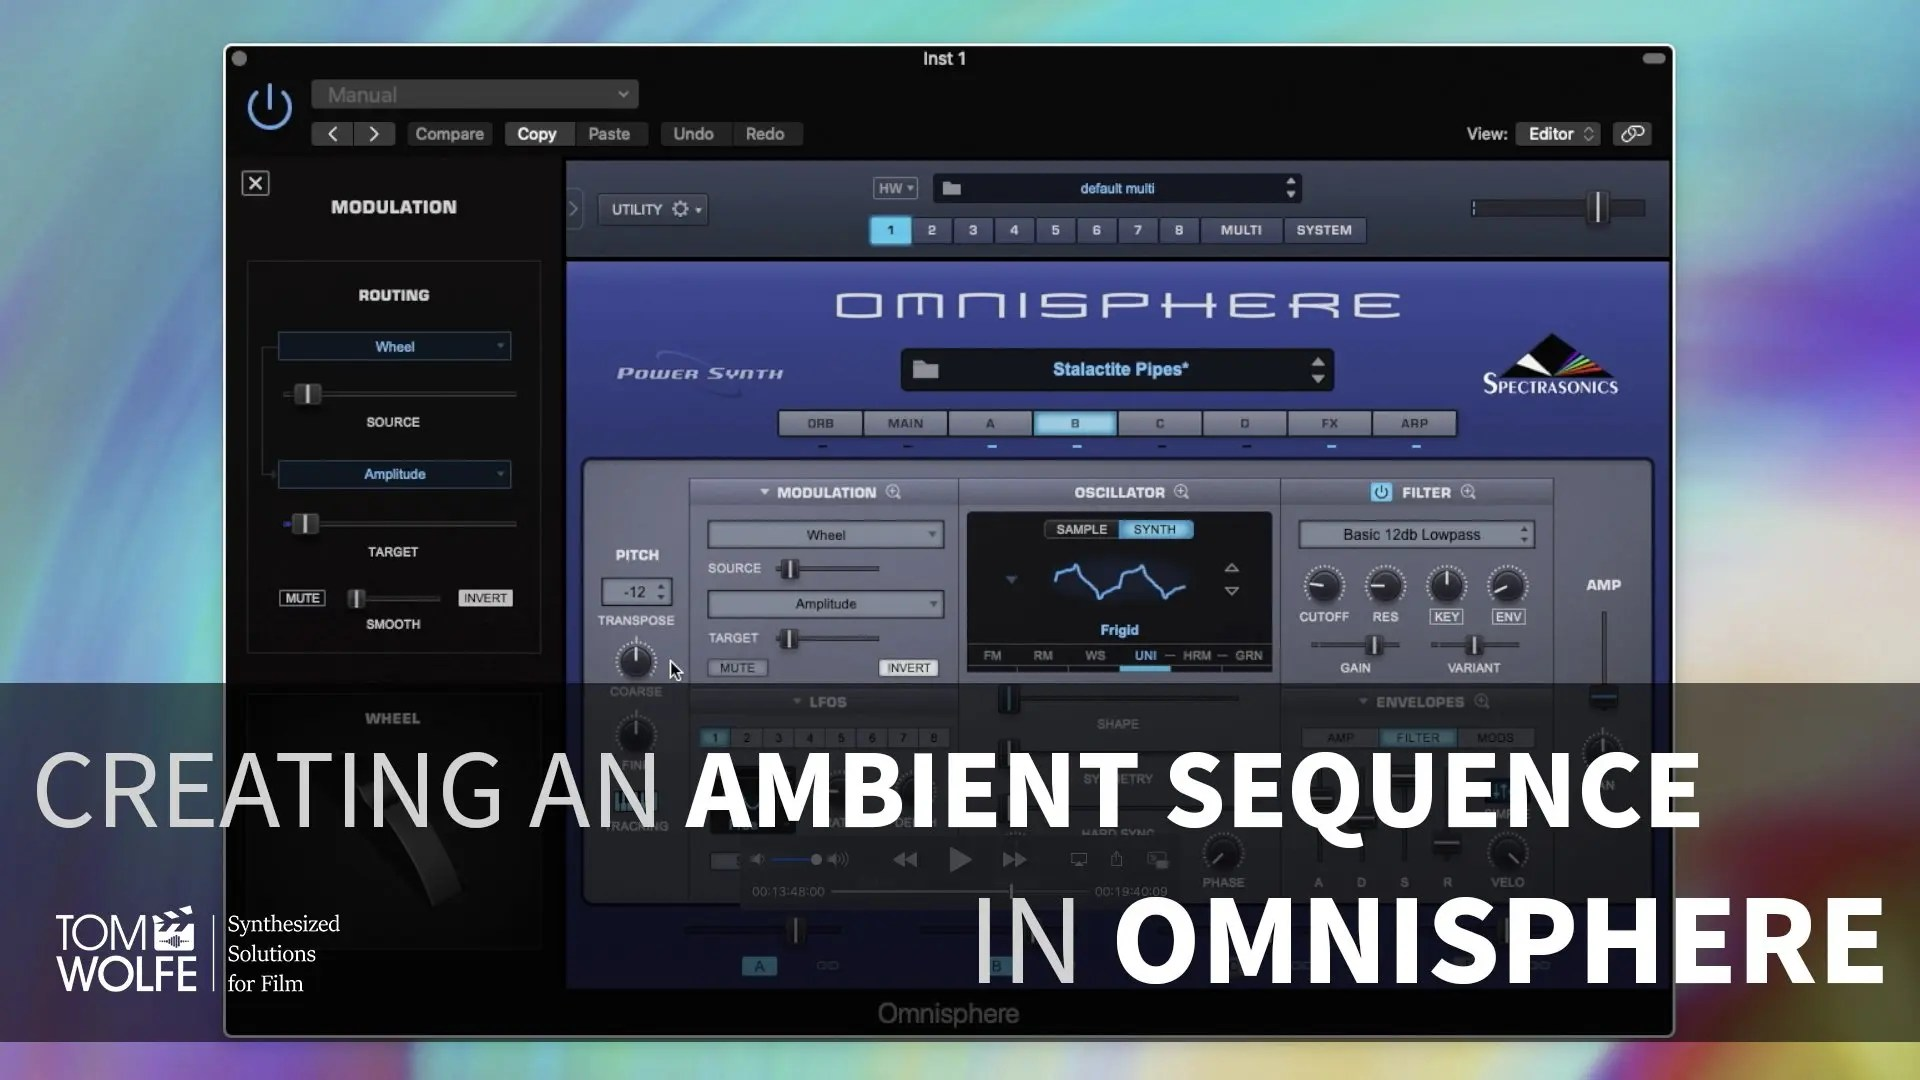 Creating A Patch In Omnisphere - Ambient Sequence (Tutorial)